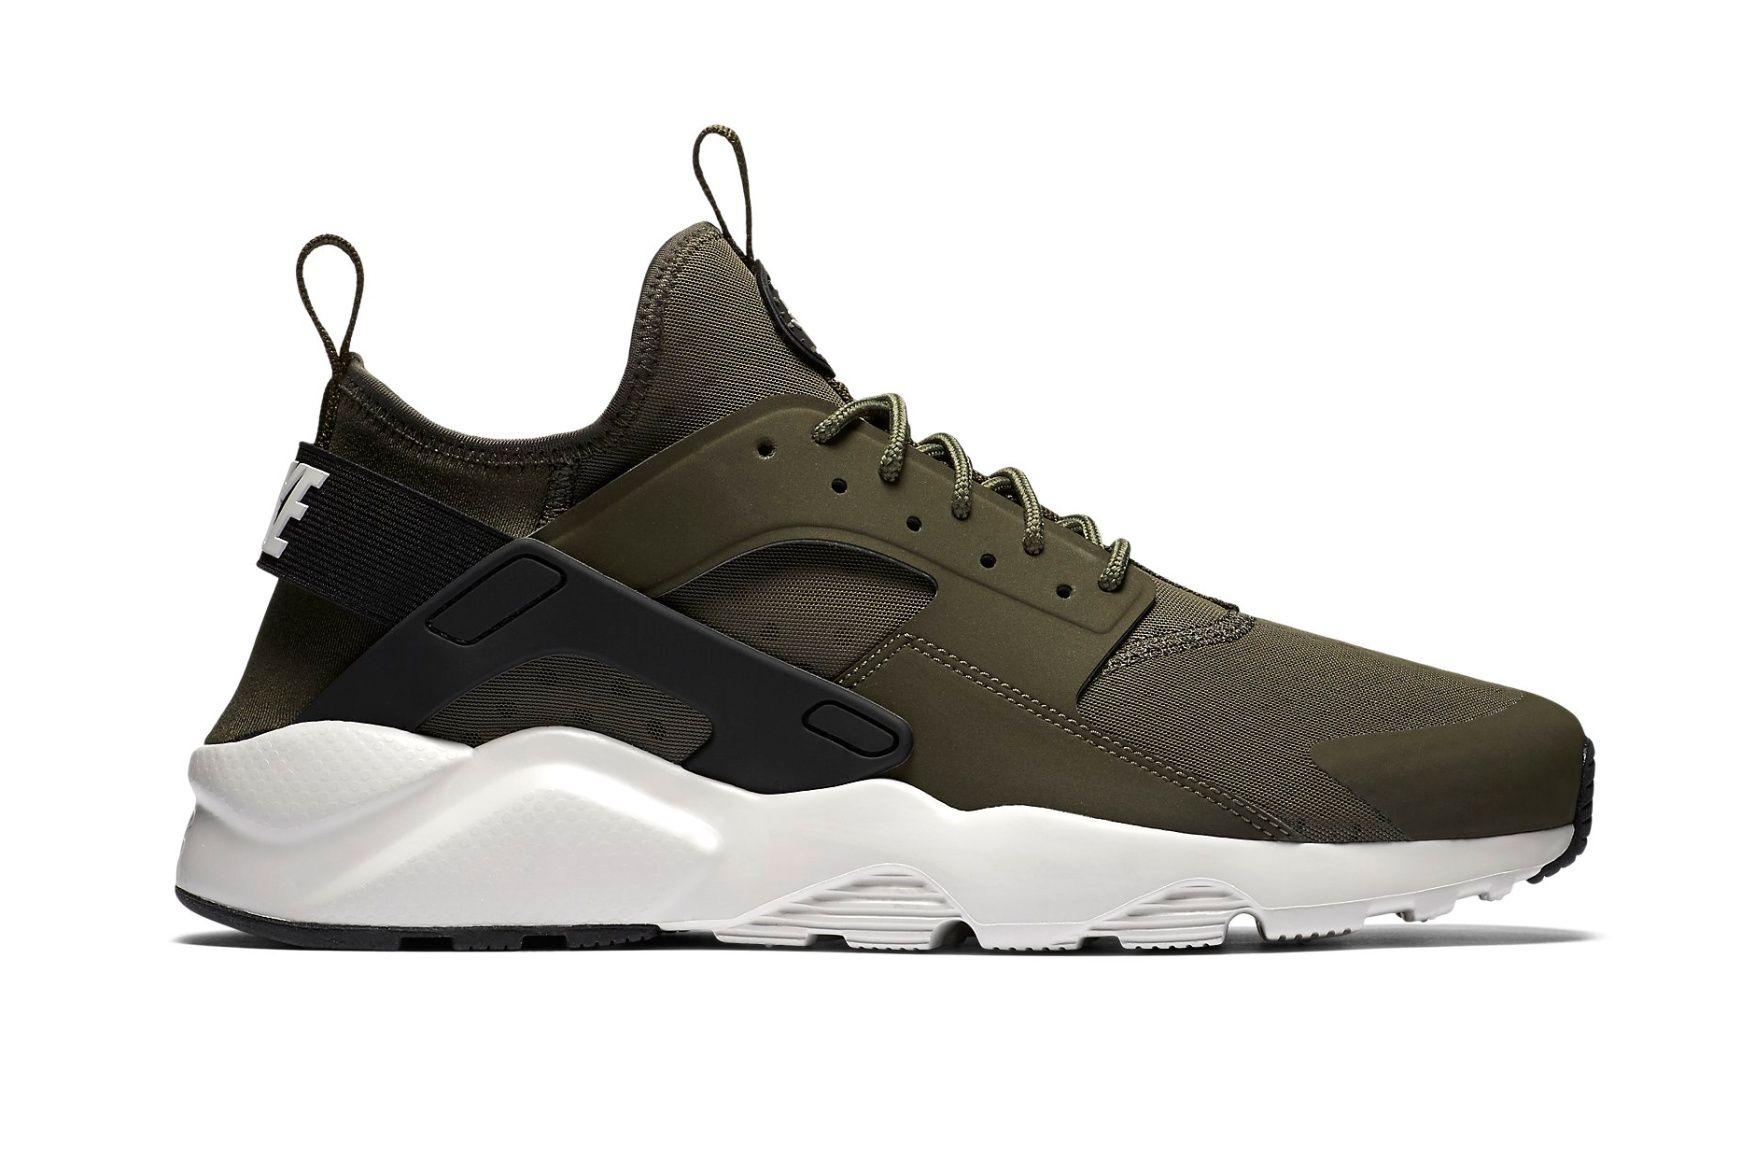 low priced 32ffb a666c Nike, Air Huarache Ultra, cargo khaki, cargo green